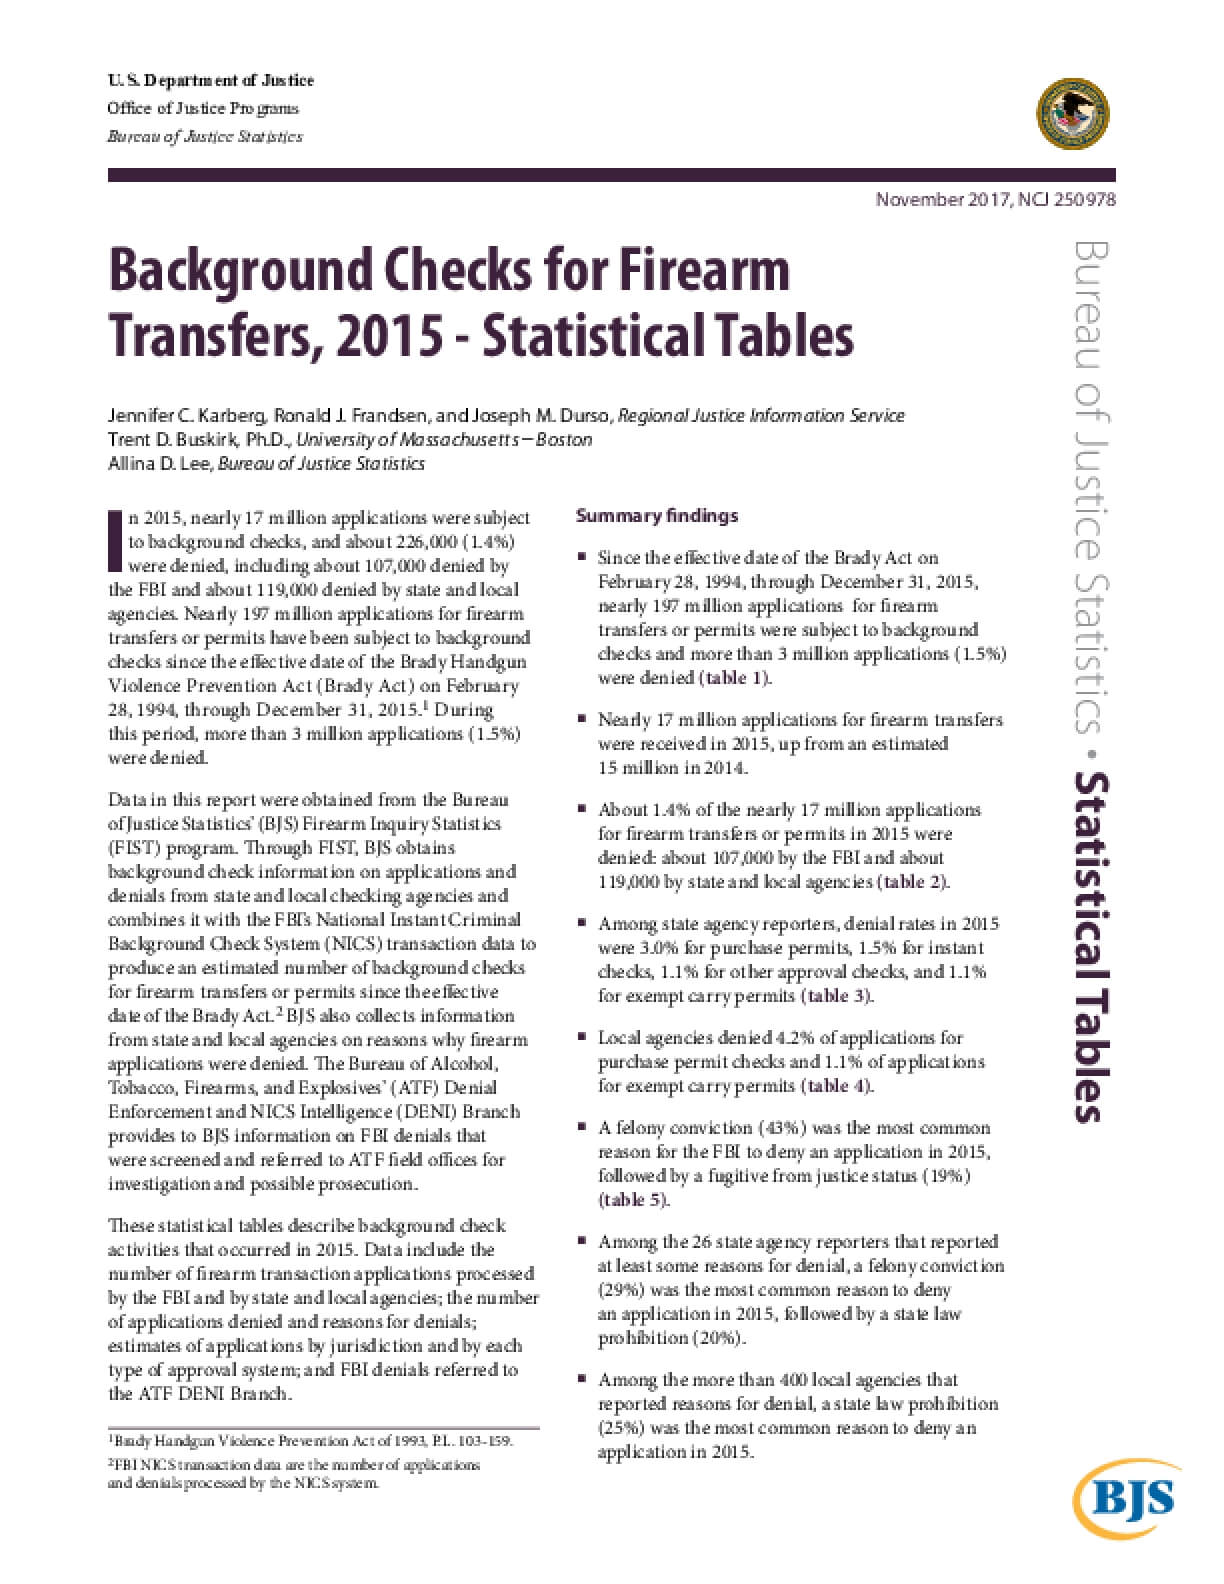 Background Checks for Firearm  Transfers, 2015 - Statistical Tables